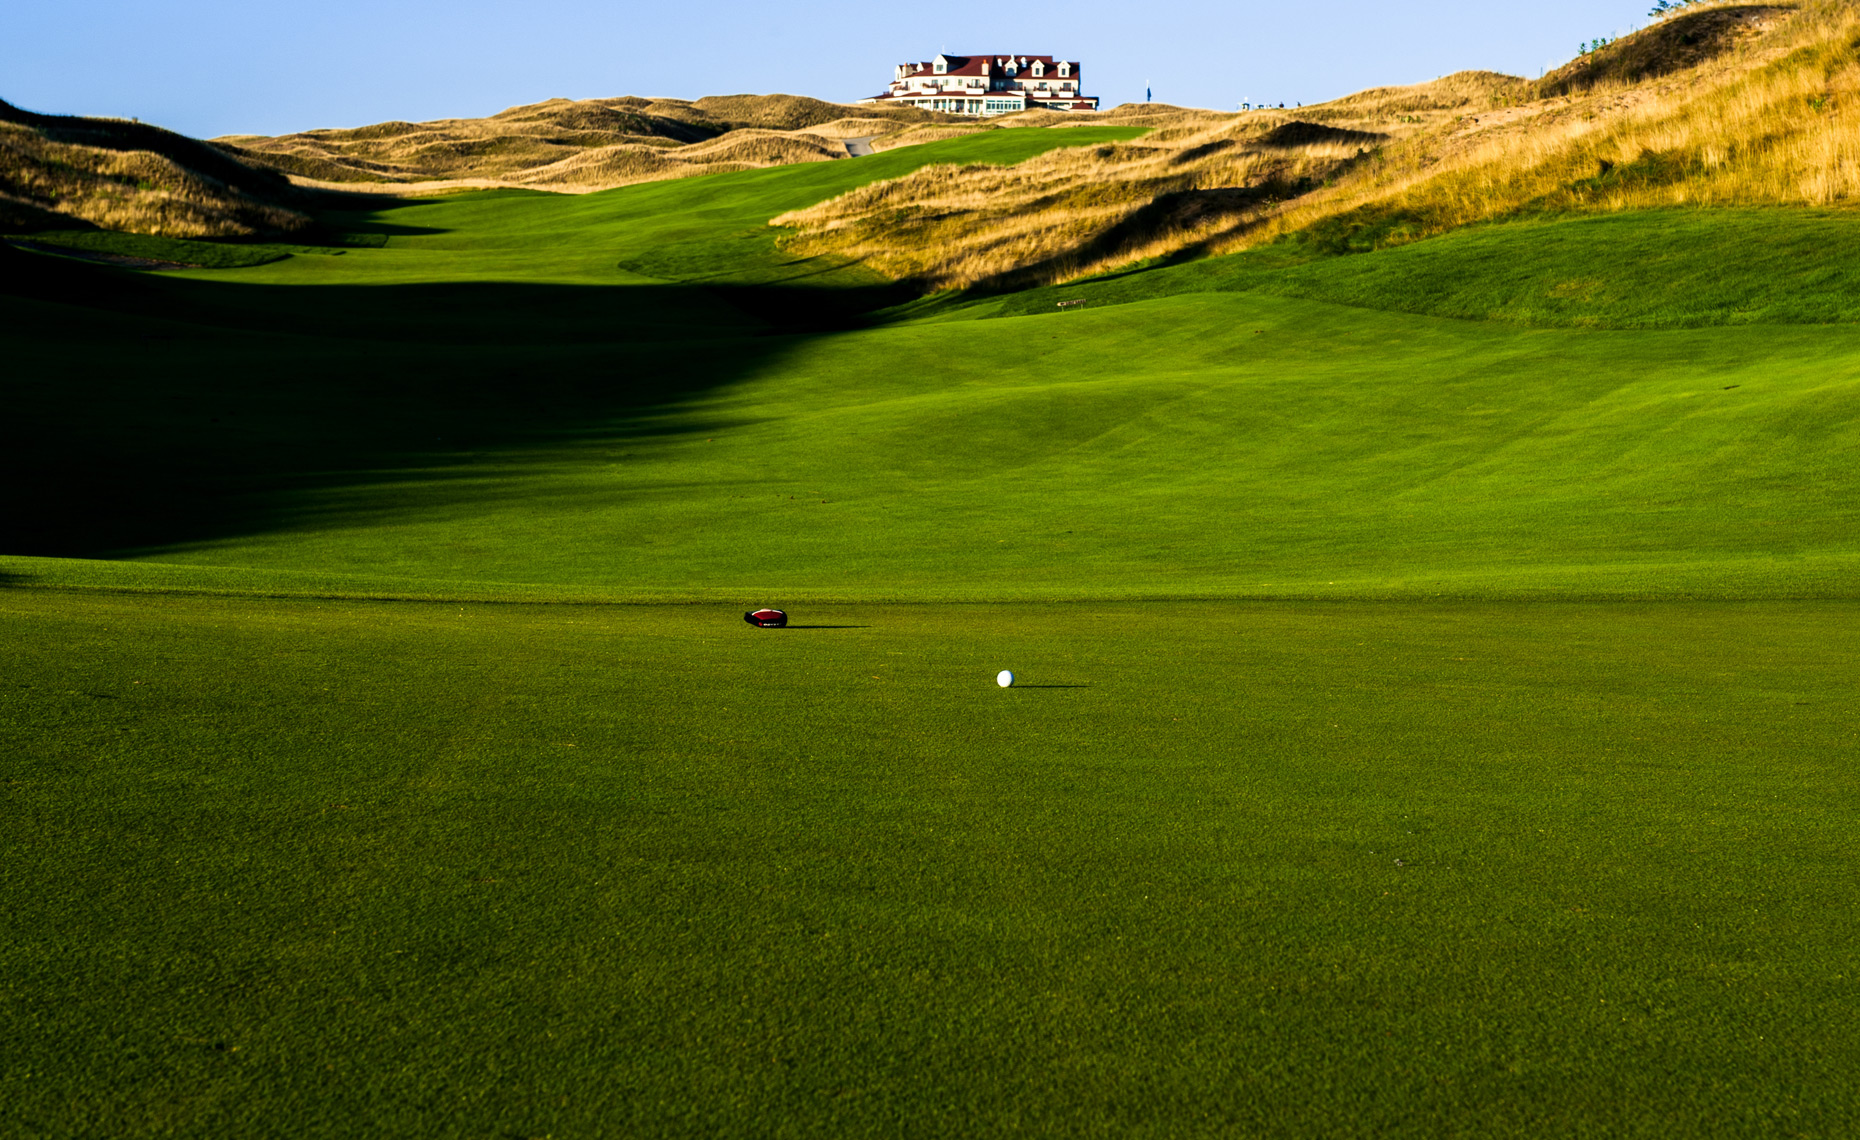 Neil-Colton-travel-photography-arcadia-bluffs-golf-club-120